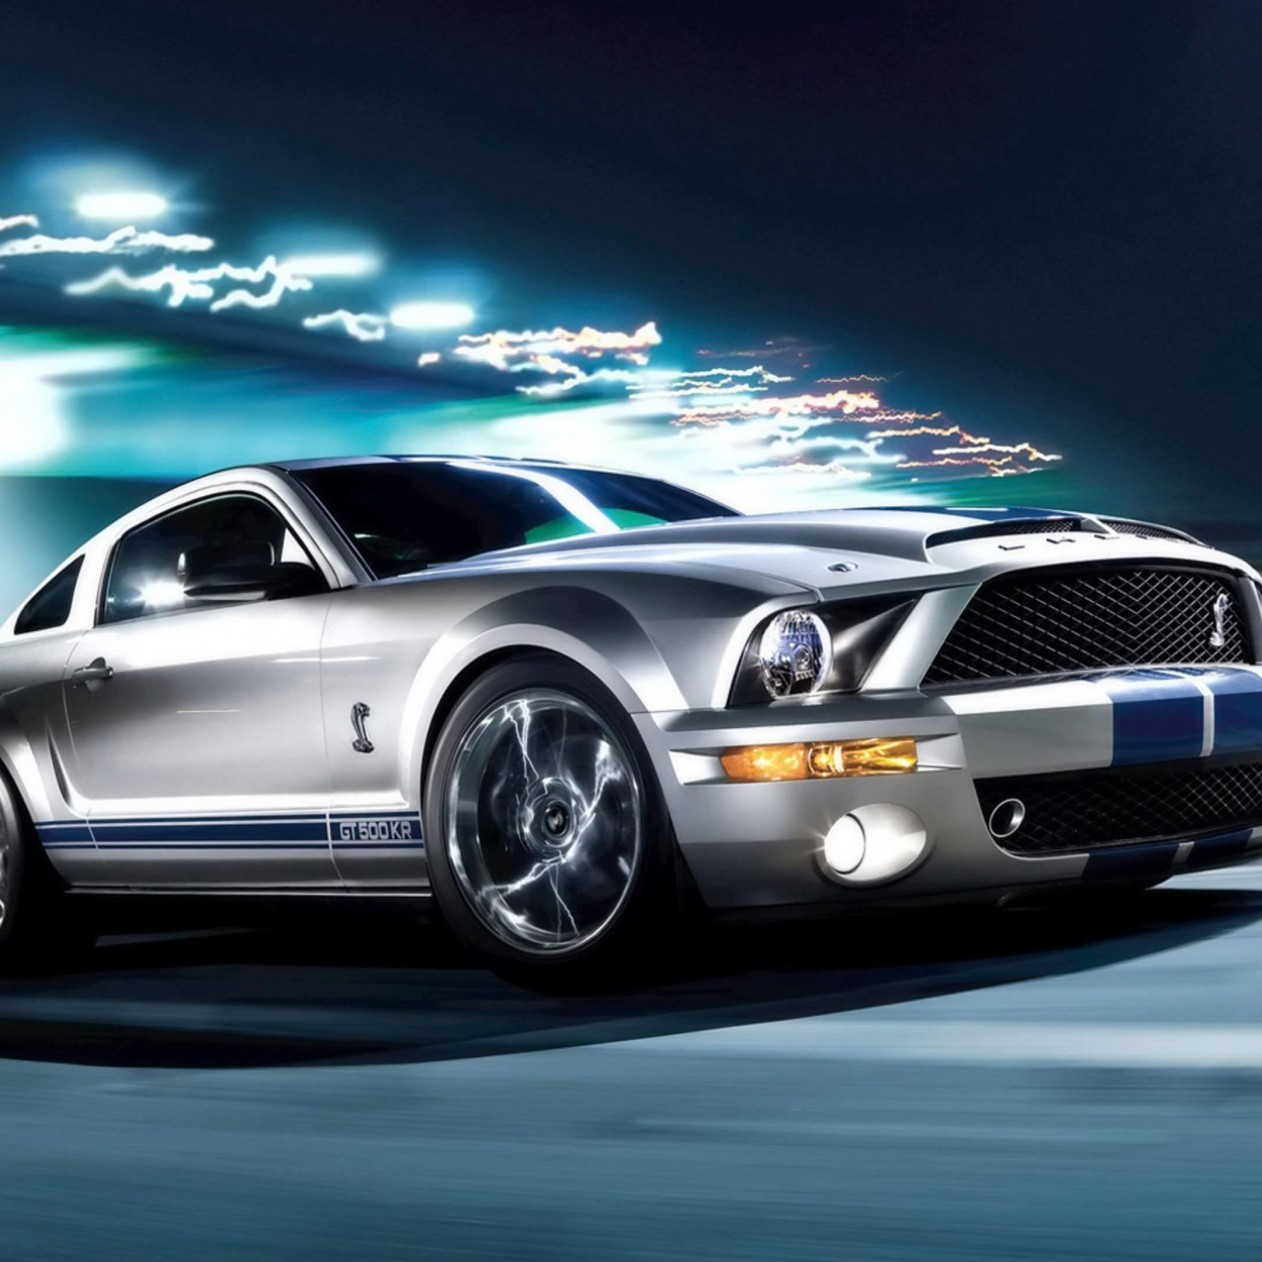 Ford Mustang Shelby GT500KR Wallpaper for Apple iPad mini